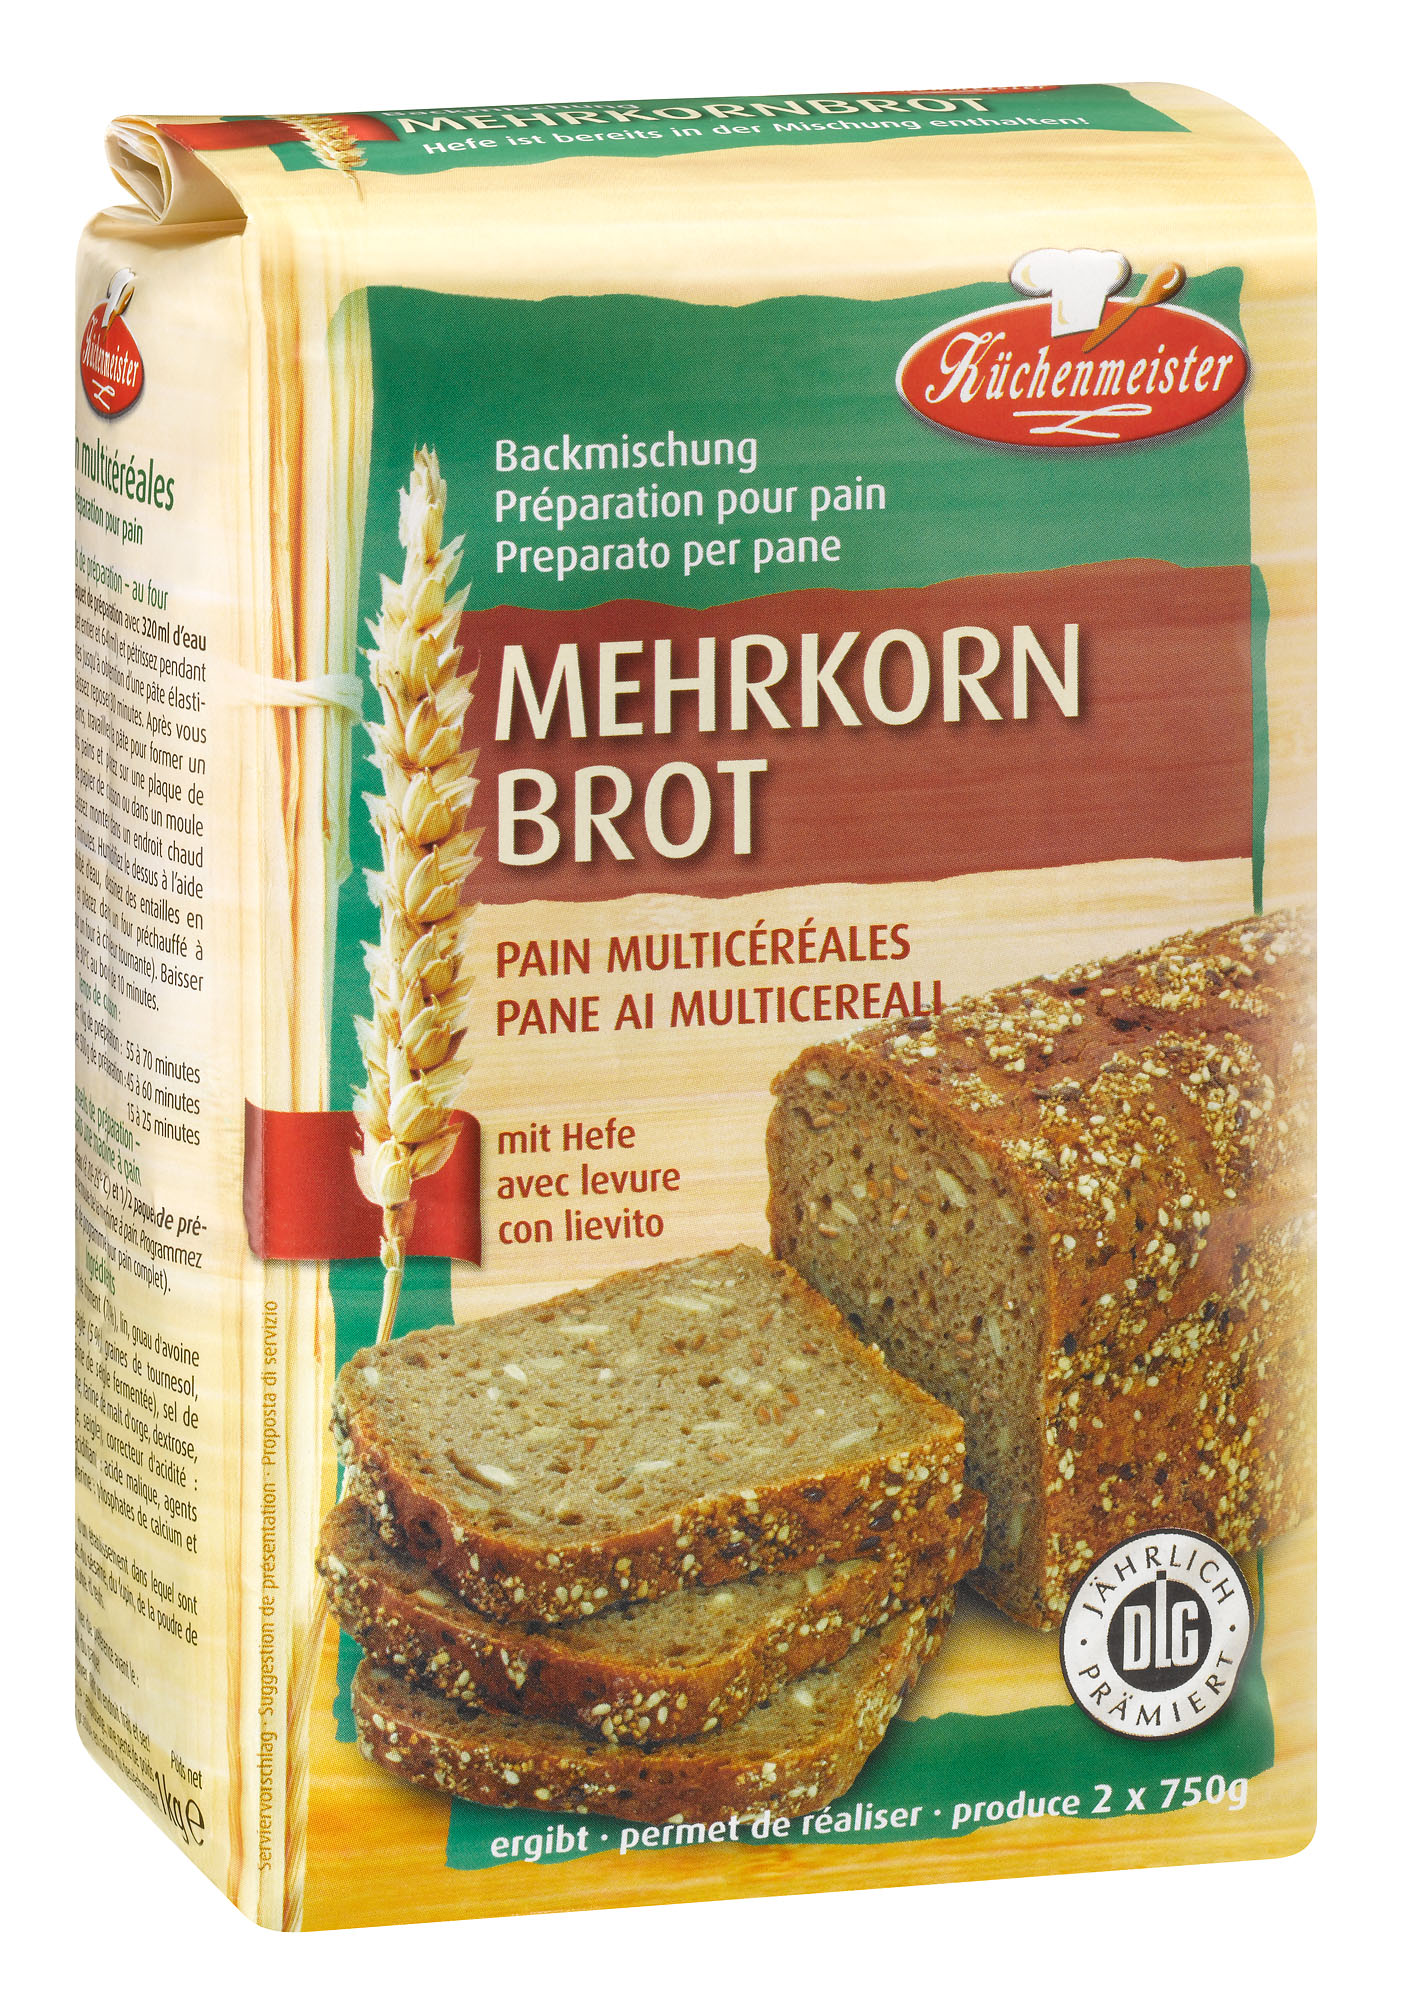 brotbackmischung mehrkornbrot 1 kilogramm hofer oesterreich mynetfair. Black Bedroom Furniture Sets. Home Design Ideas